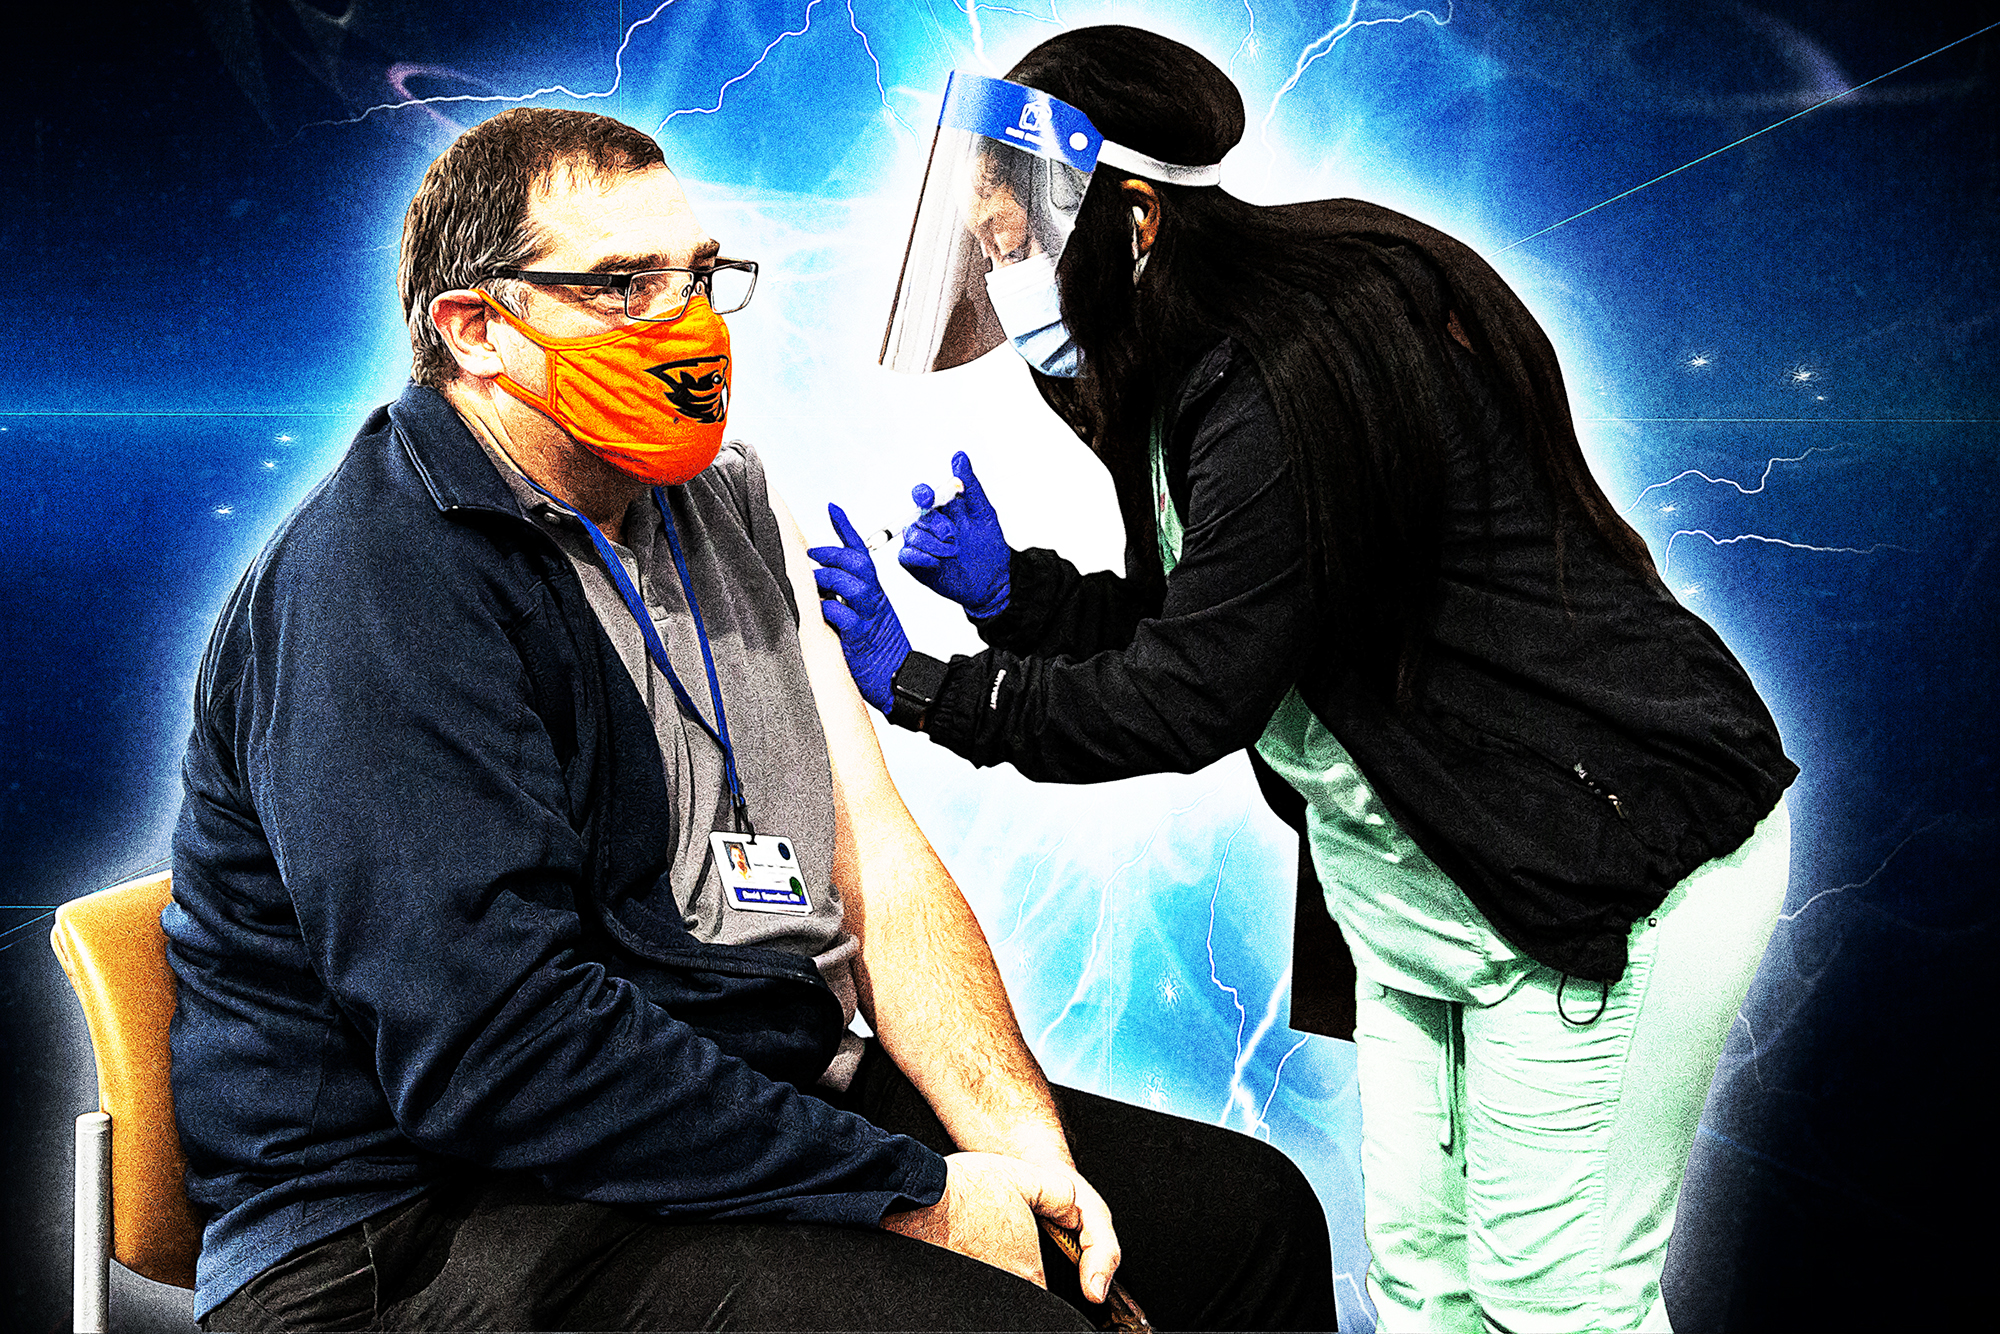 Female health care worker wearing a face shield giving a vaccine to a man.